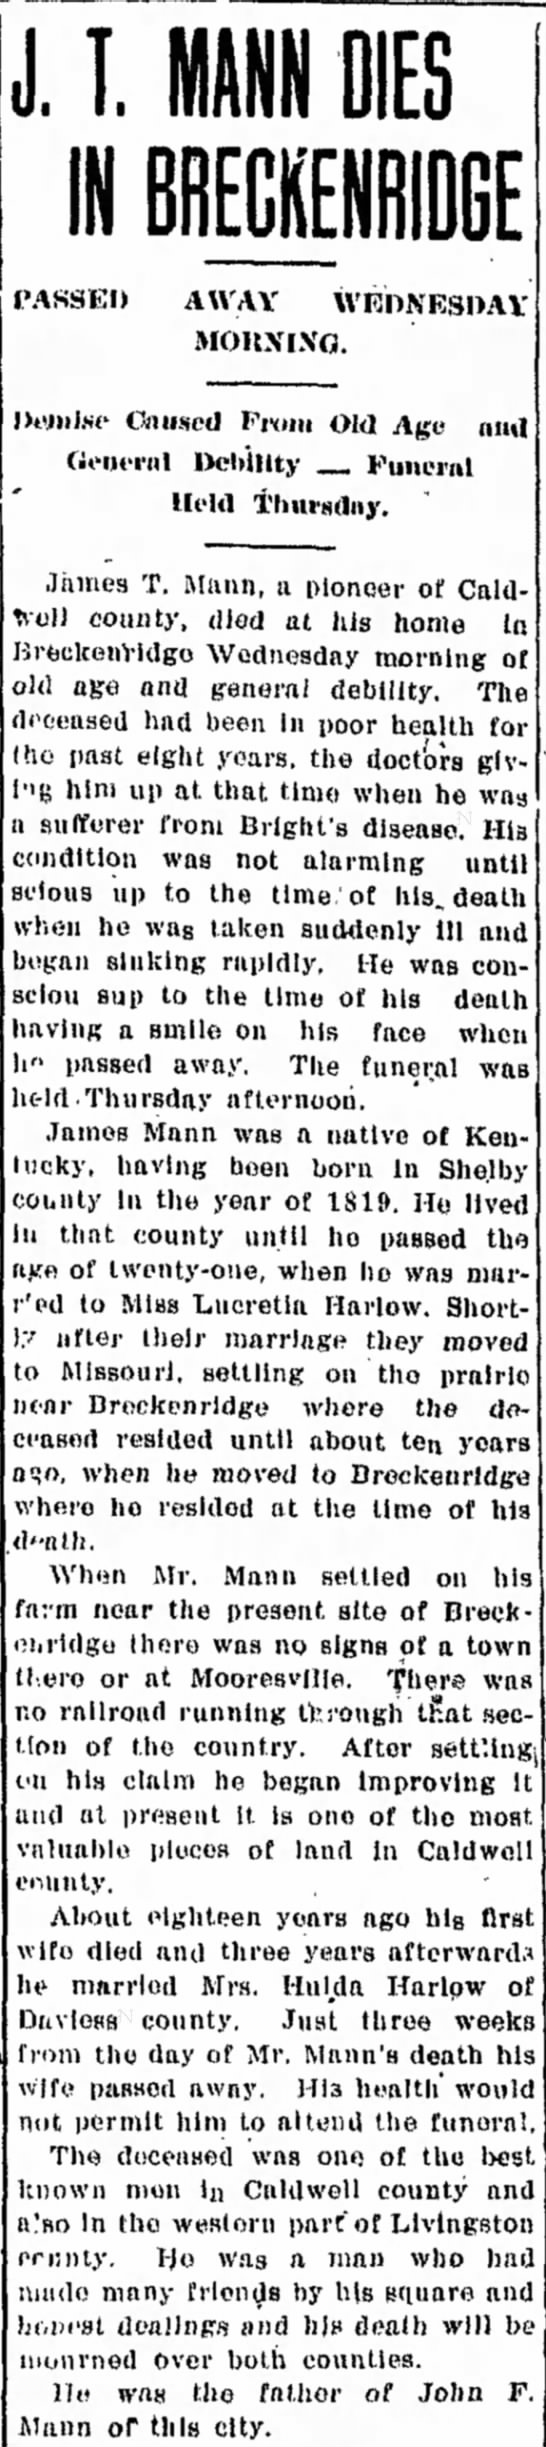 Mann, James Thomas. The Chillicothe Consitution-Tribune (Chillicothe, MO)20 Nov 1908 - Obituary - iu cer- to remedy blood relief. ot iu mi-...